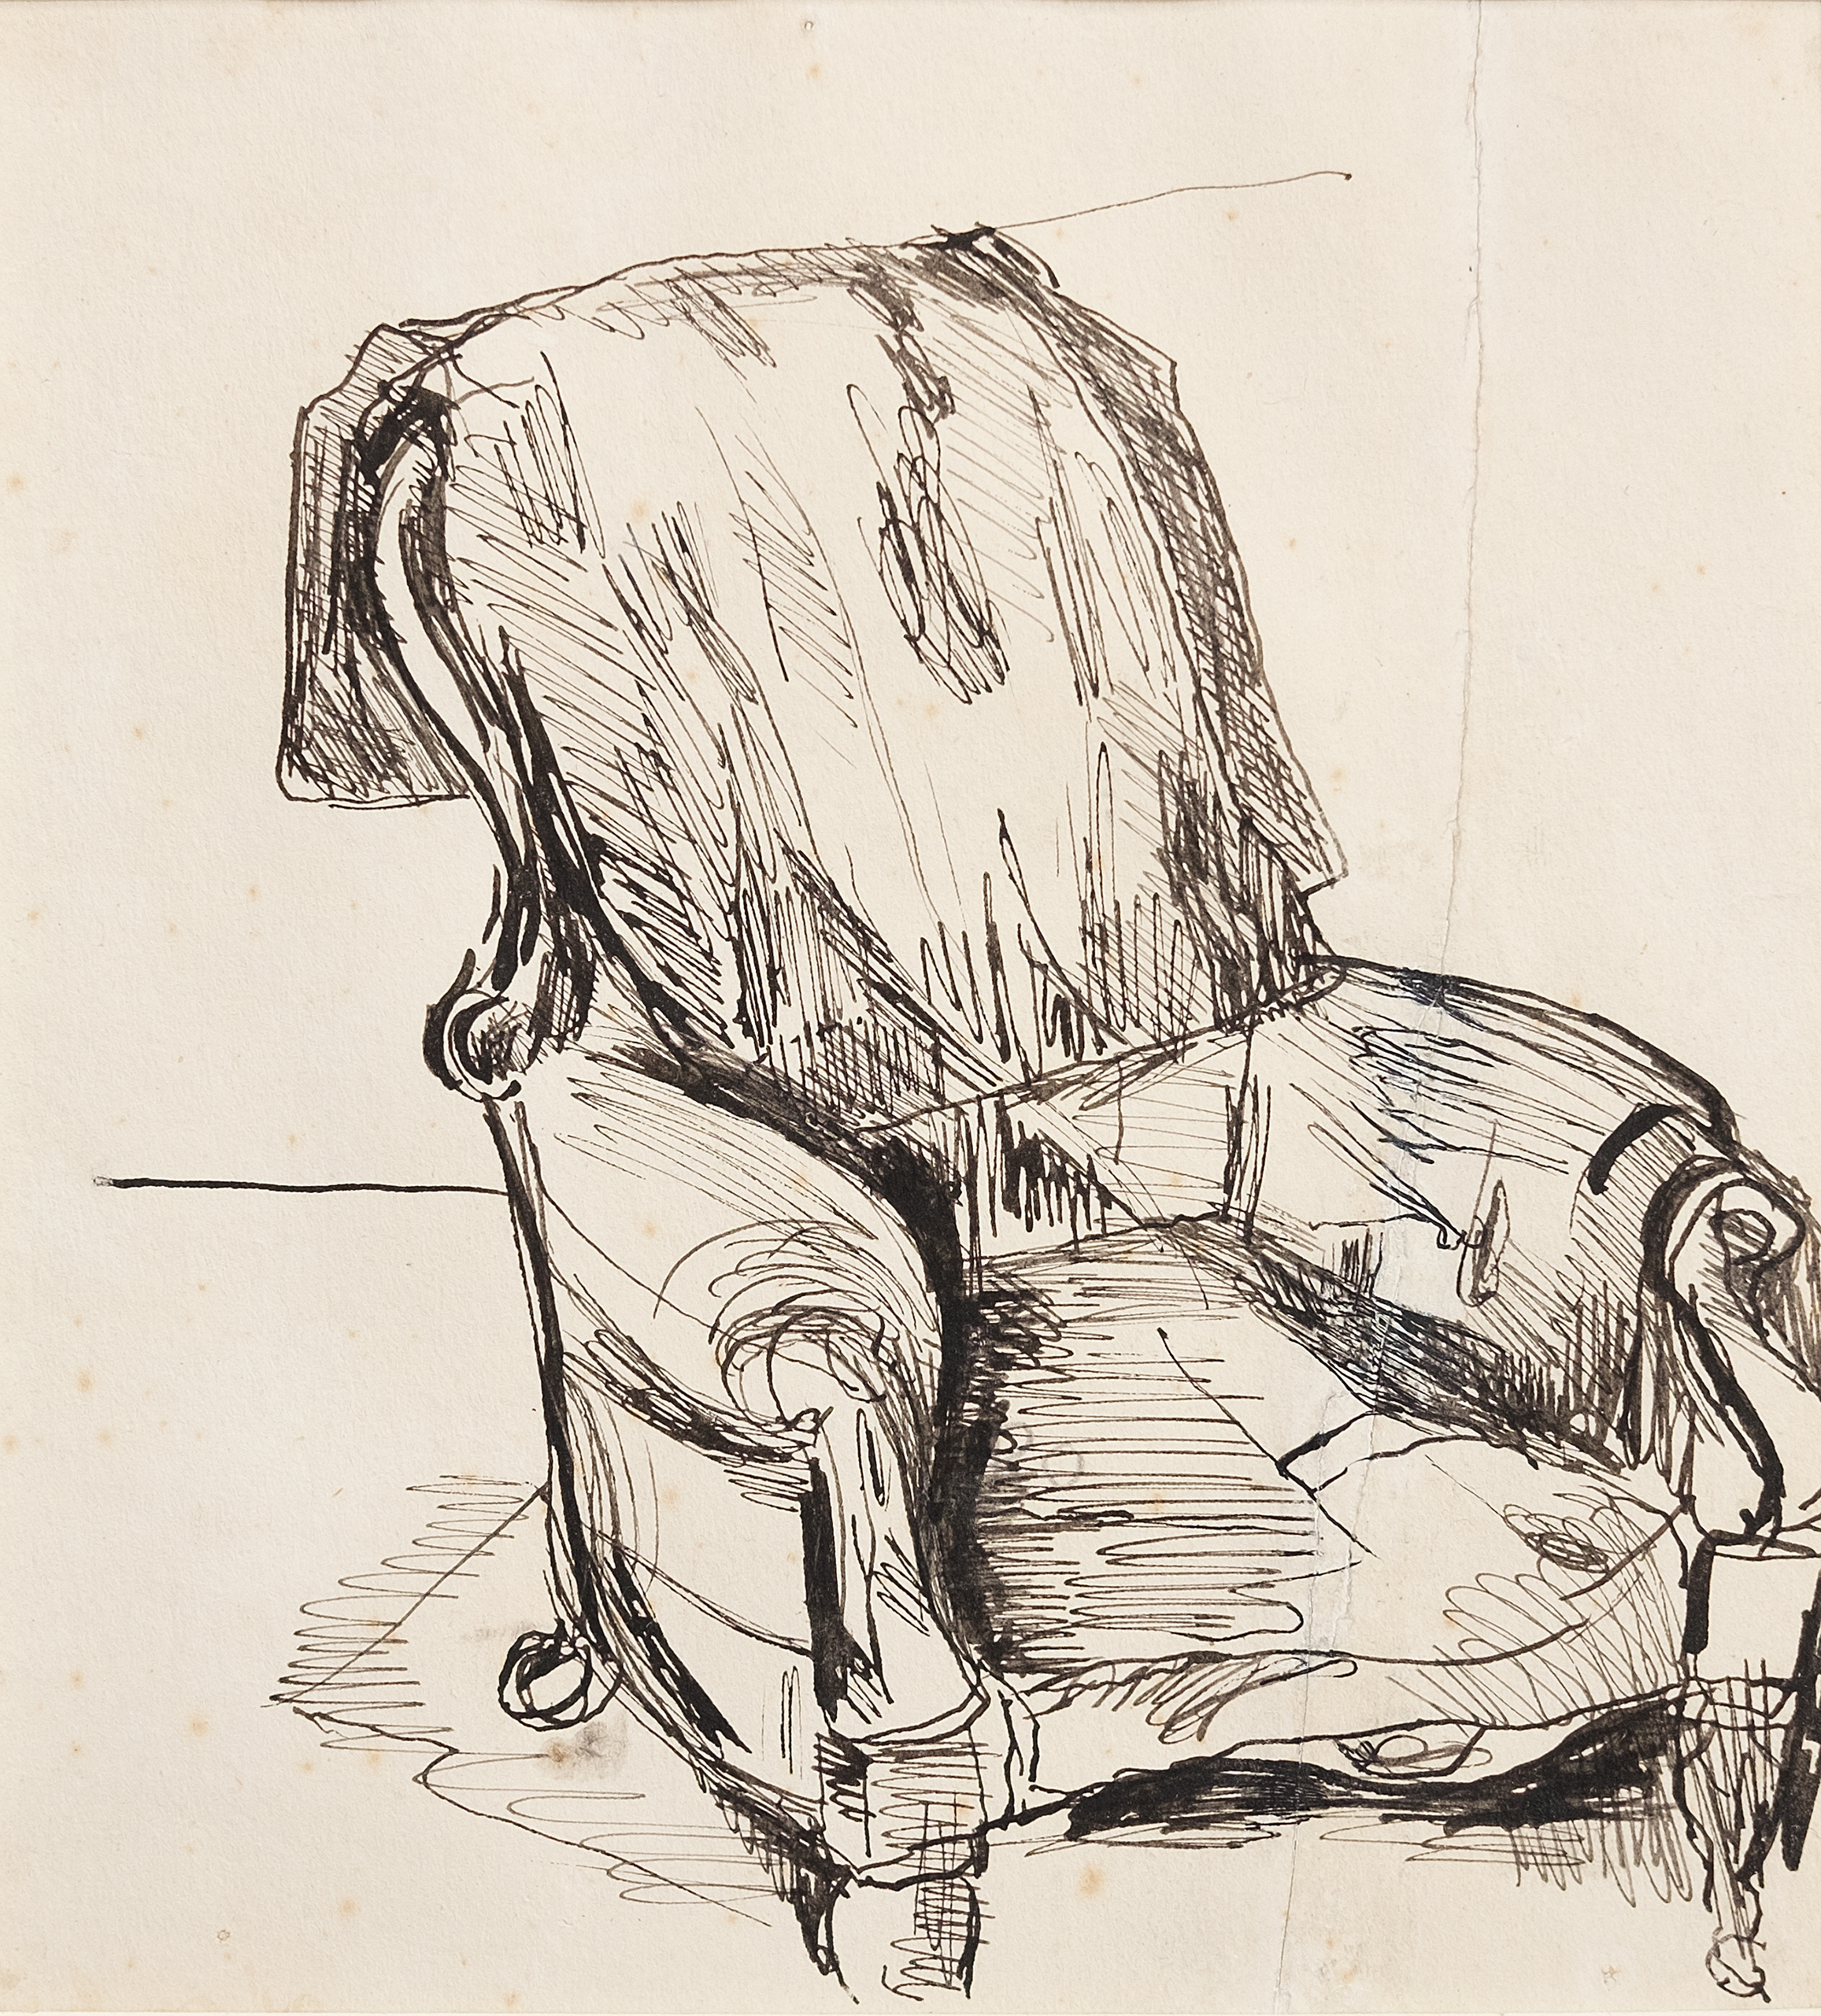 190422-McCahon-Chair_01-cropped-sharp.jpg